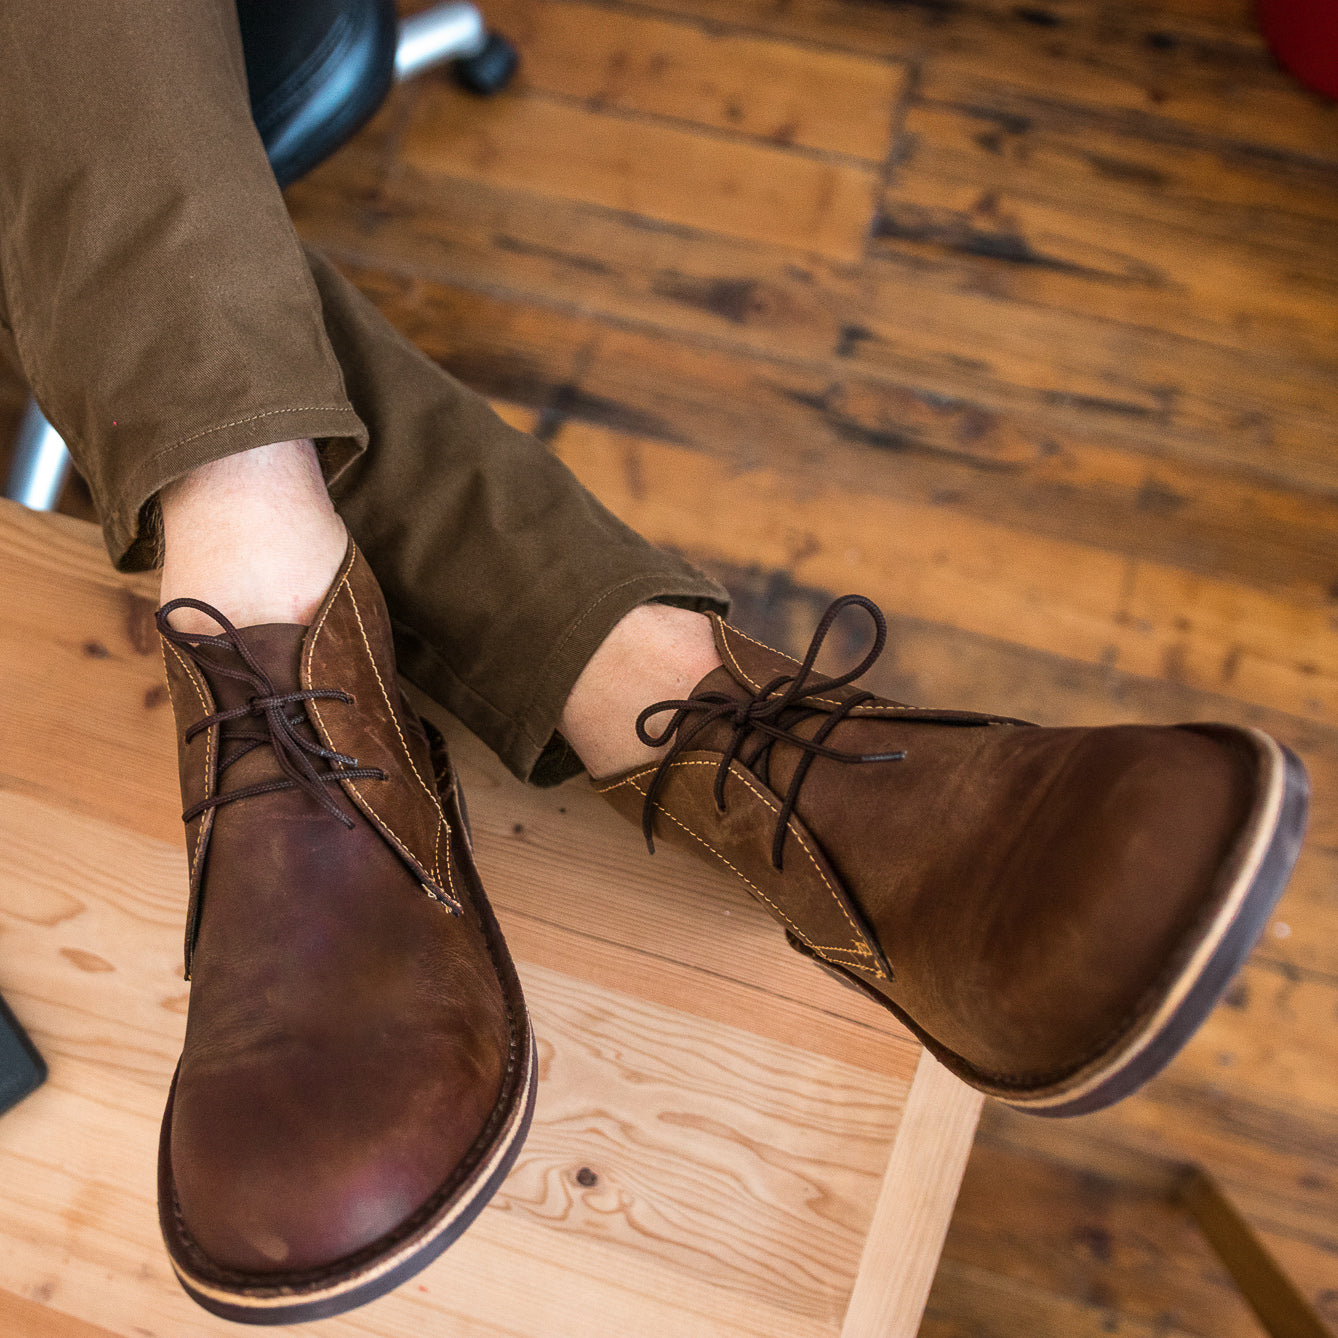 Veldskoen shoes and boots or known as vellies chukka boot ethically and sustainably handcrafted in South Africa sold in united states man sitting with brown pants with feet up on desk in office environment